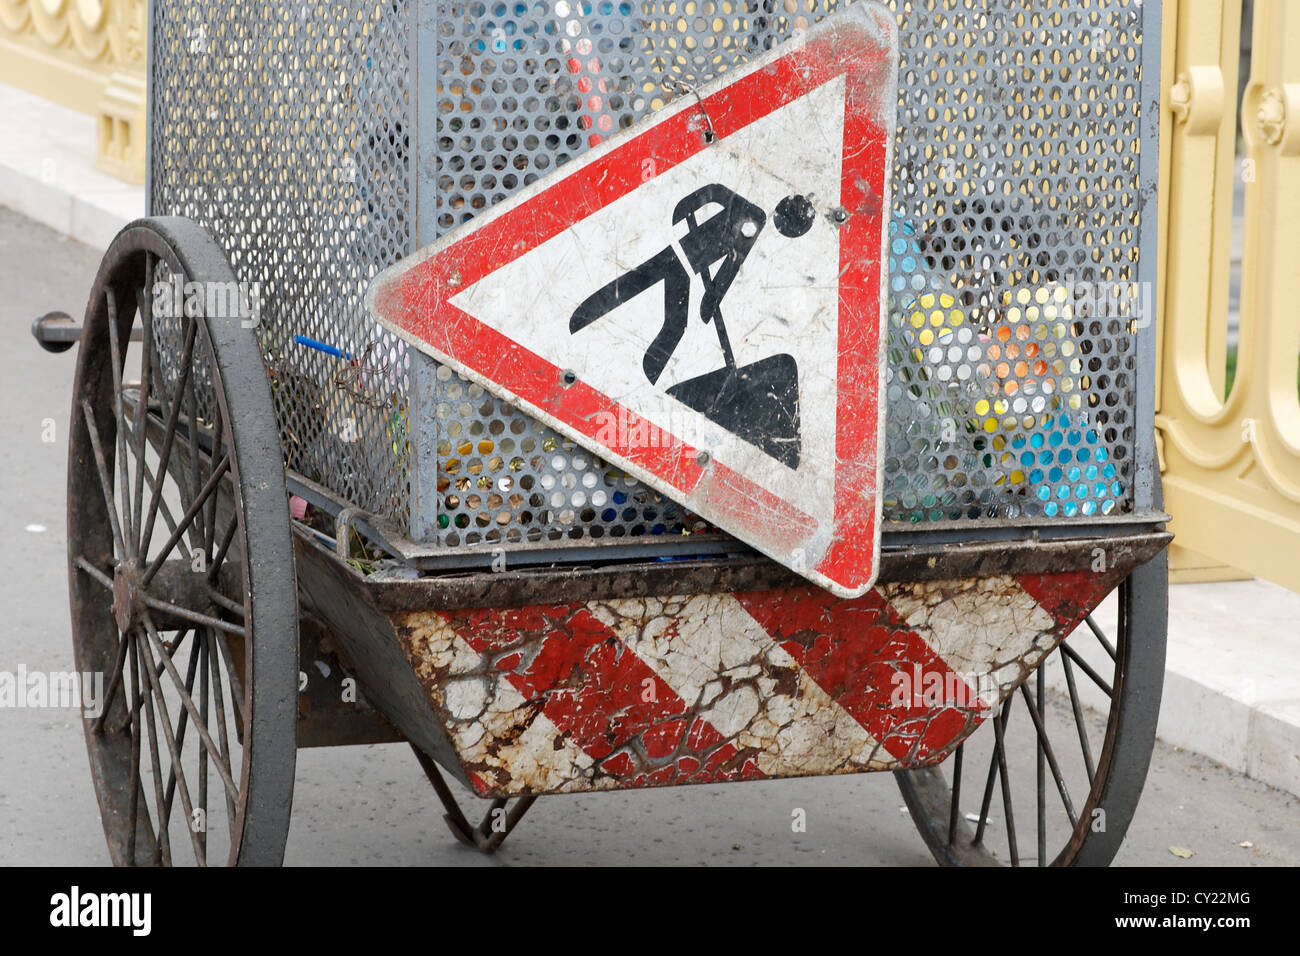 Cleaning cart full of rubbish cleaned from the streets in Budapest, Hungary Stock Photo